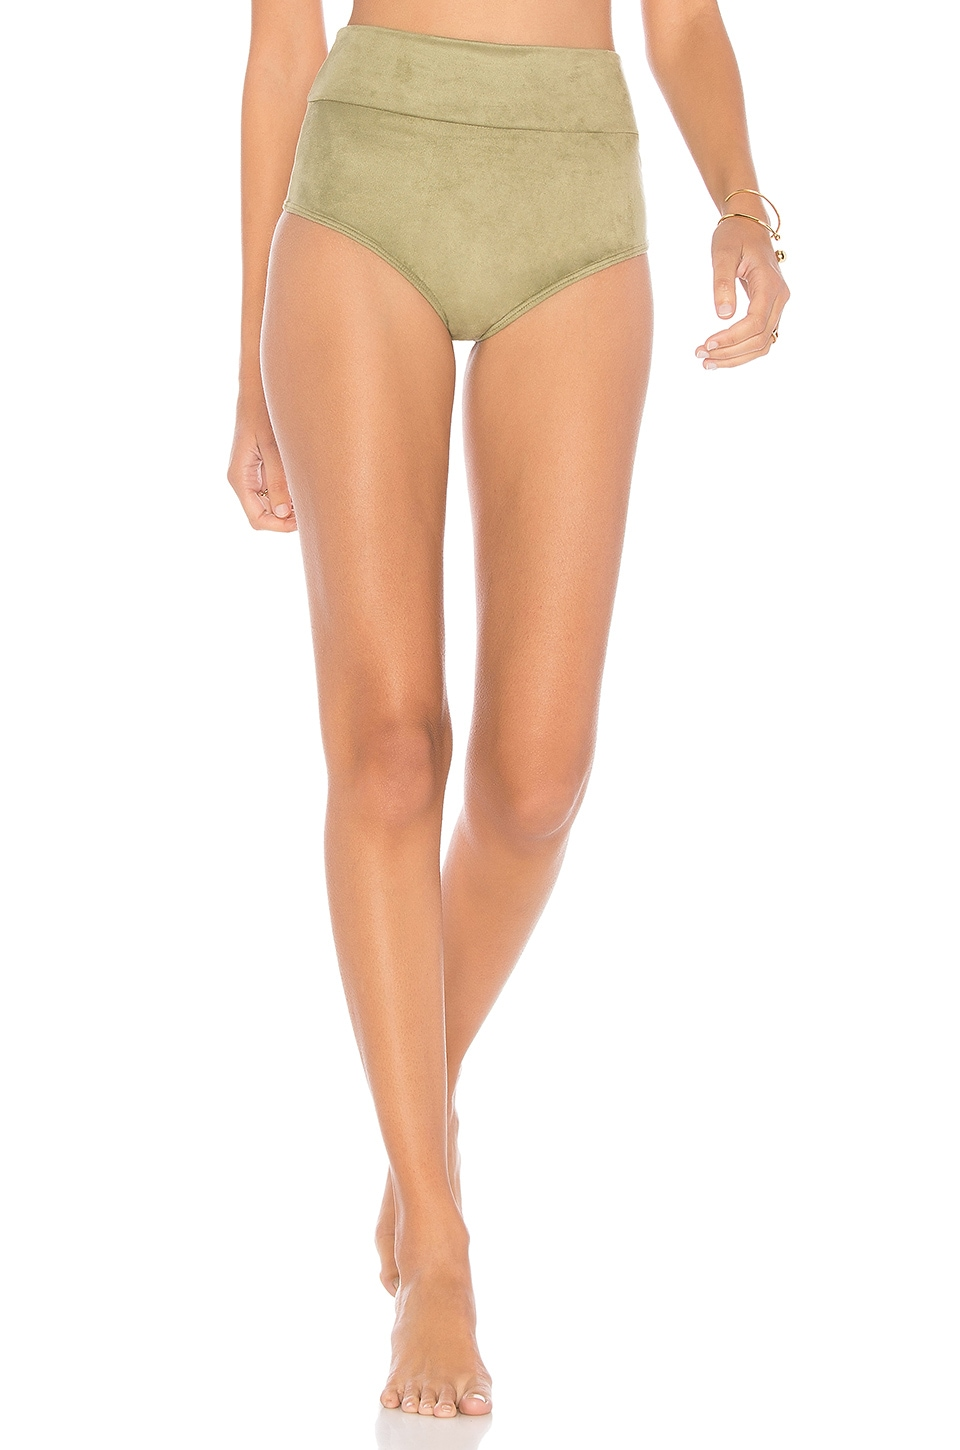 MONTCE SWIM Belted High Rise Bottom in Olive